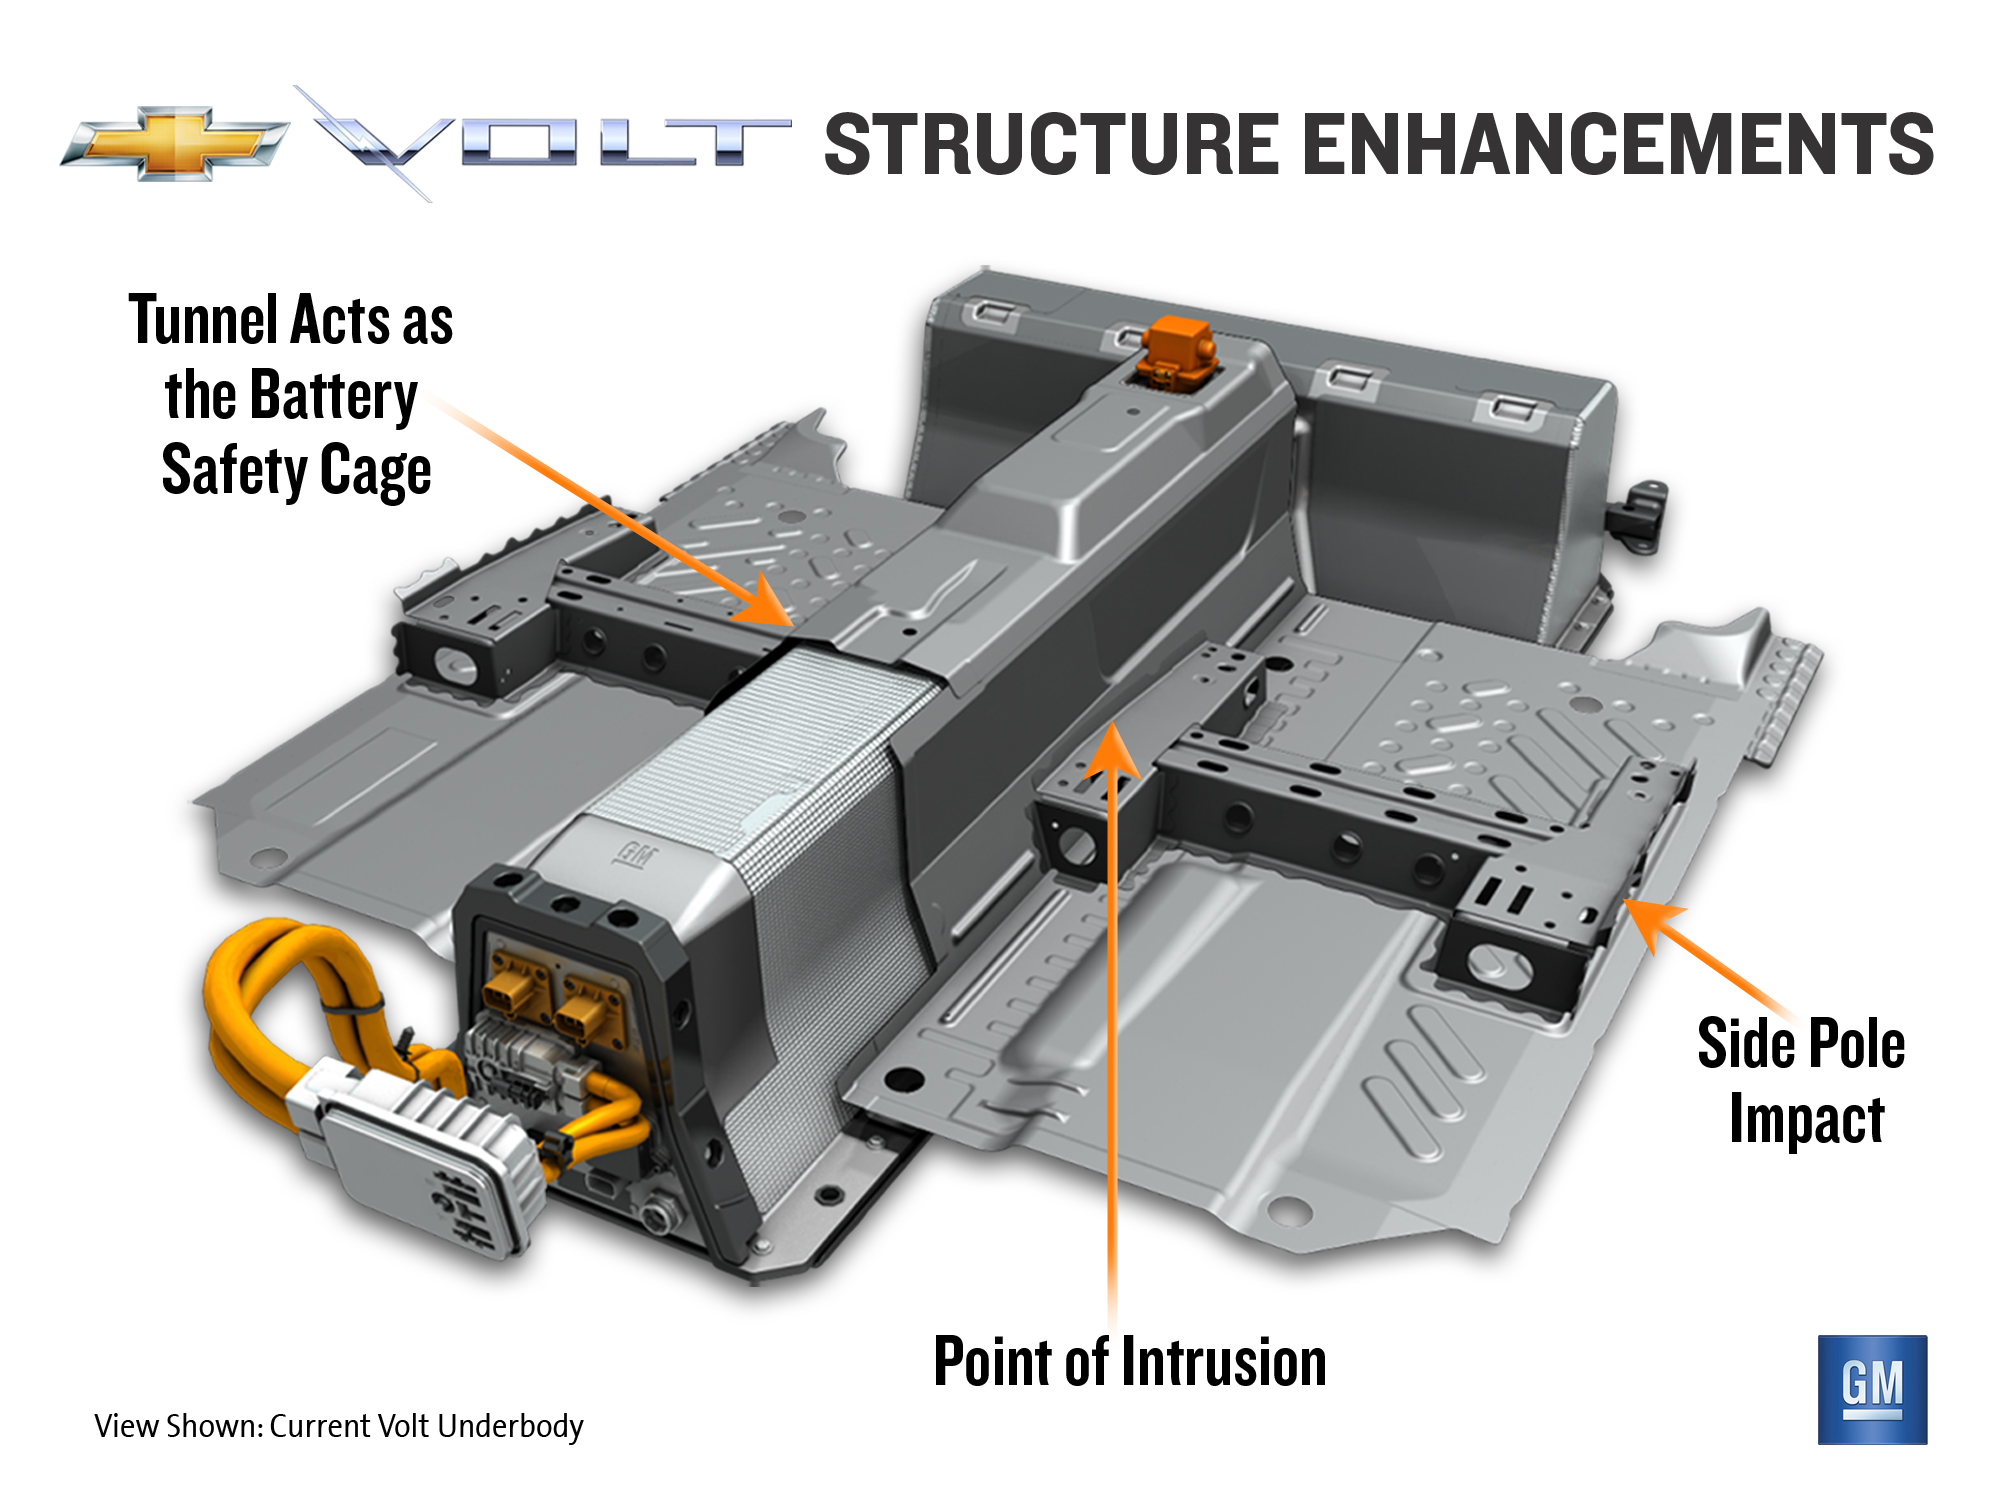 GM: Enhancements Will Further Protect Chevrolet Volt Battery from Fire Risk